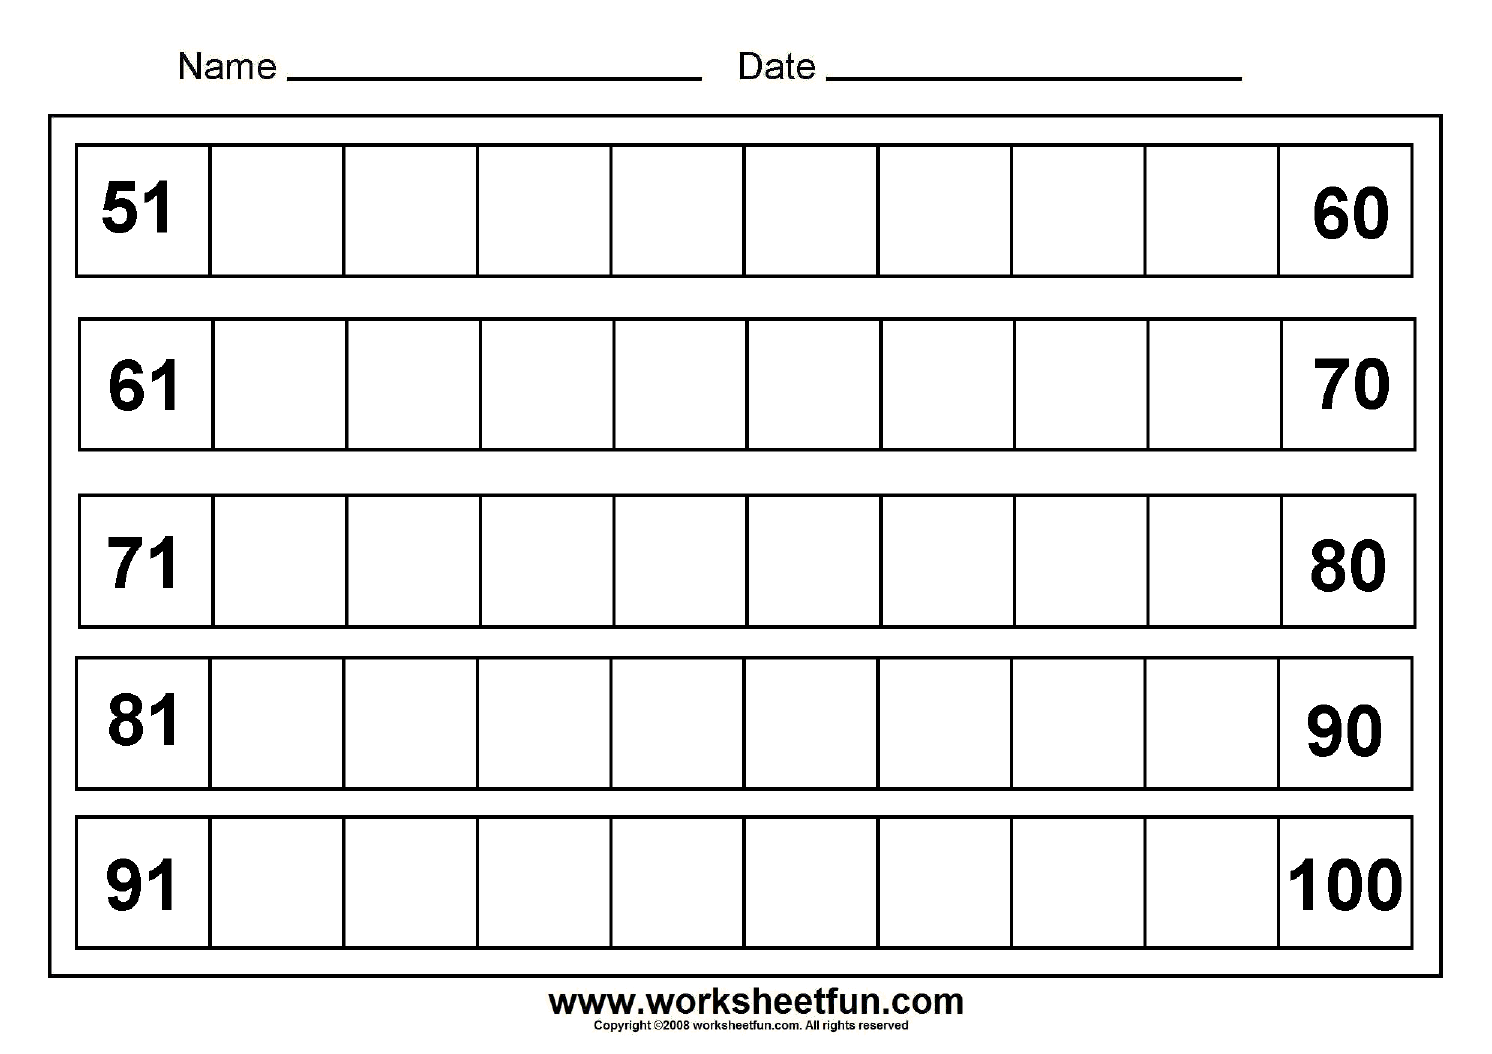 missing numbers (51-100) - 8 Worksheets | Printable Worksheets ...